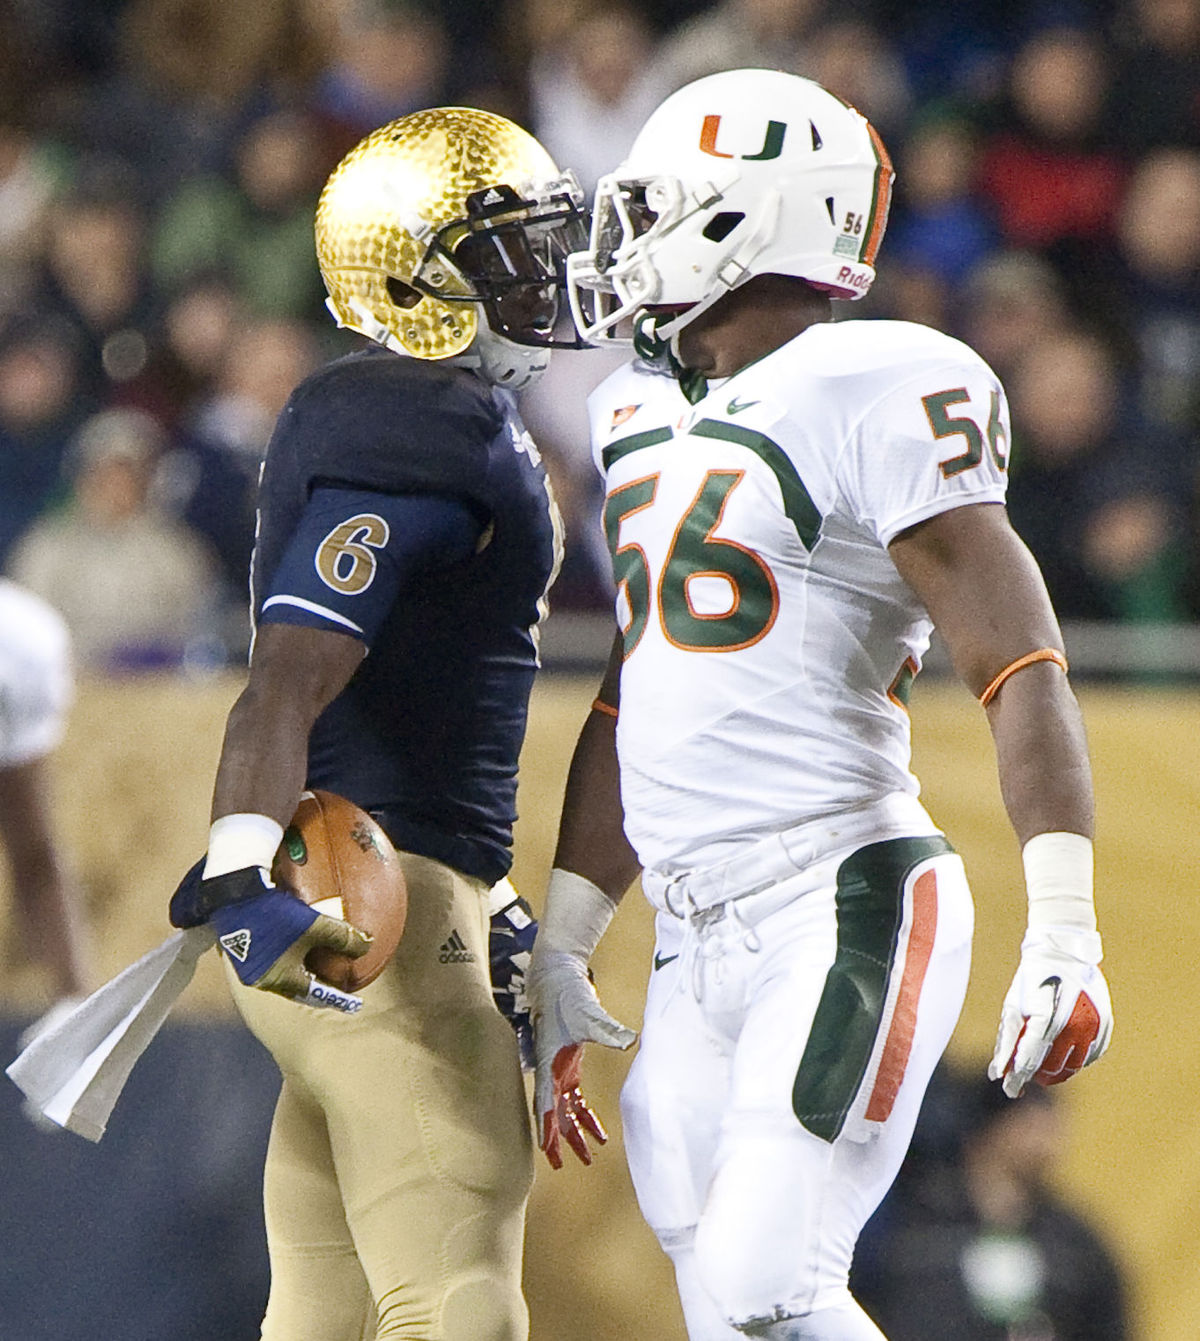 Miami vs Notre Dame Rivalry Revived